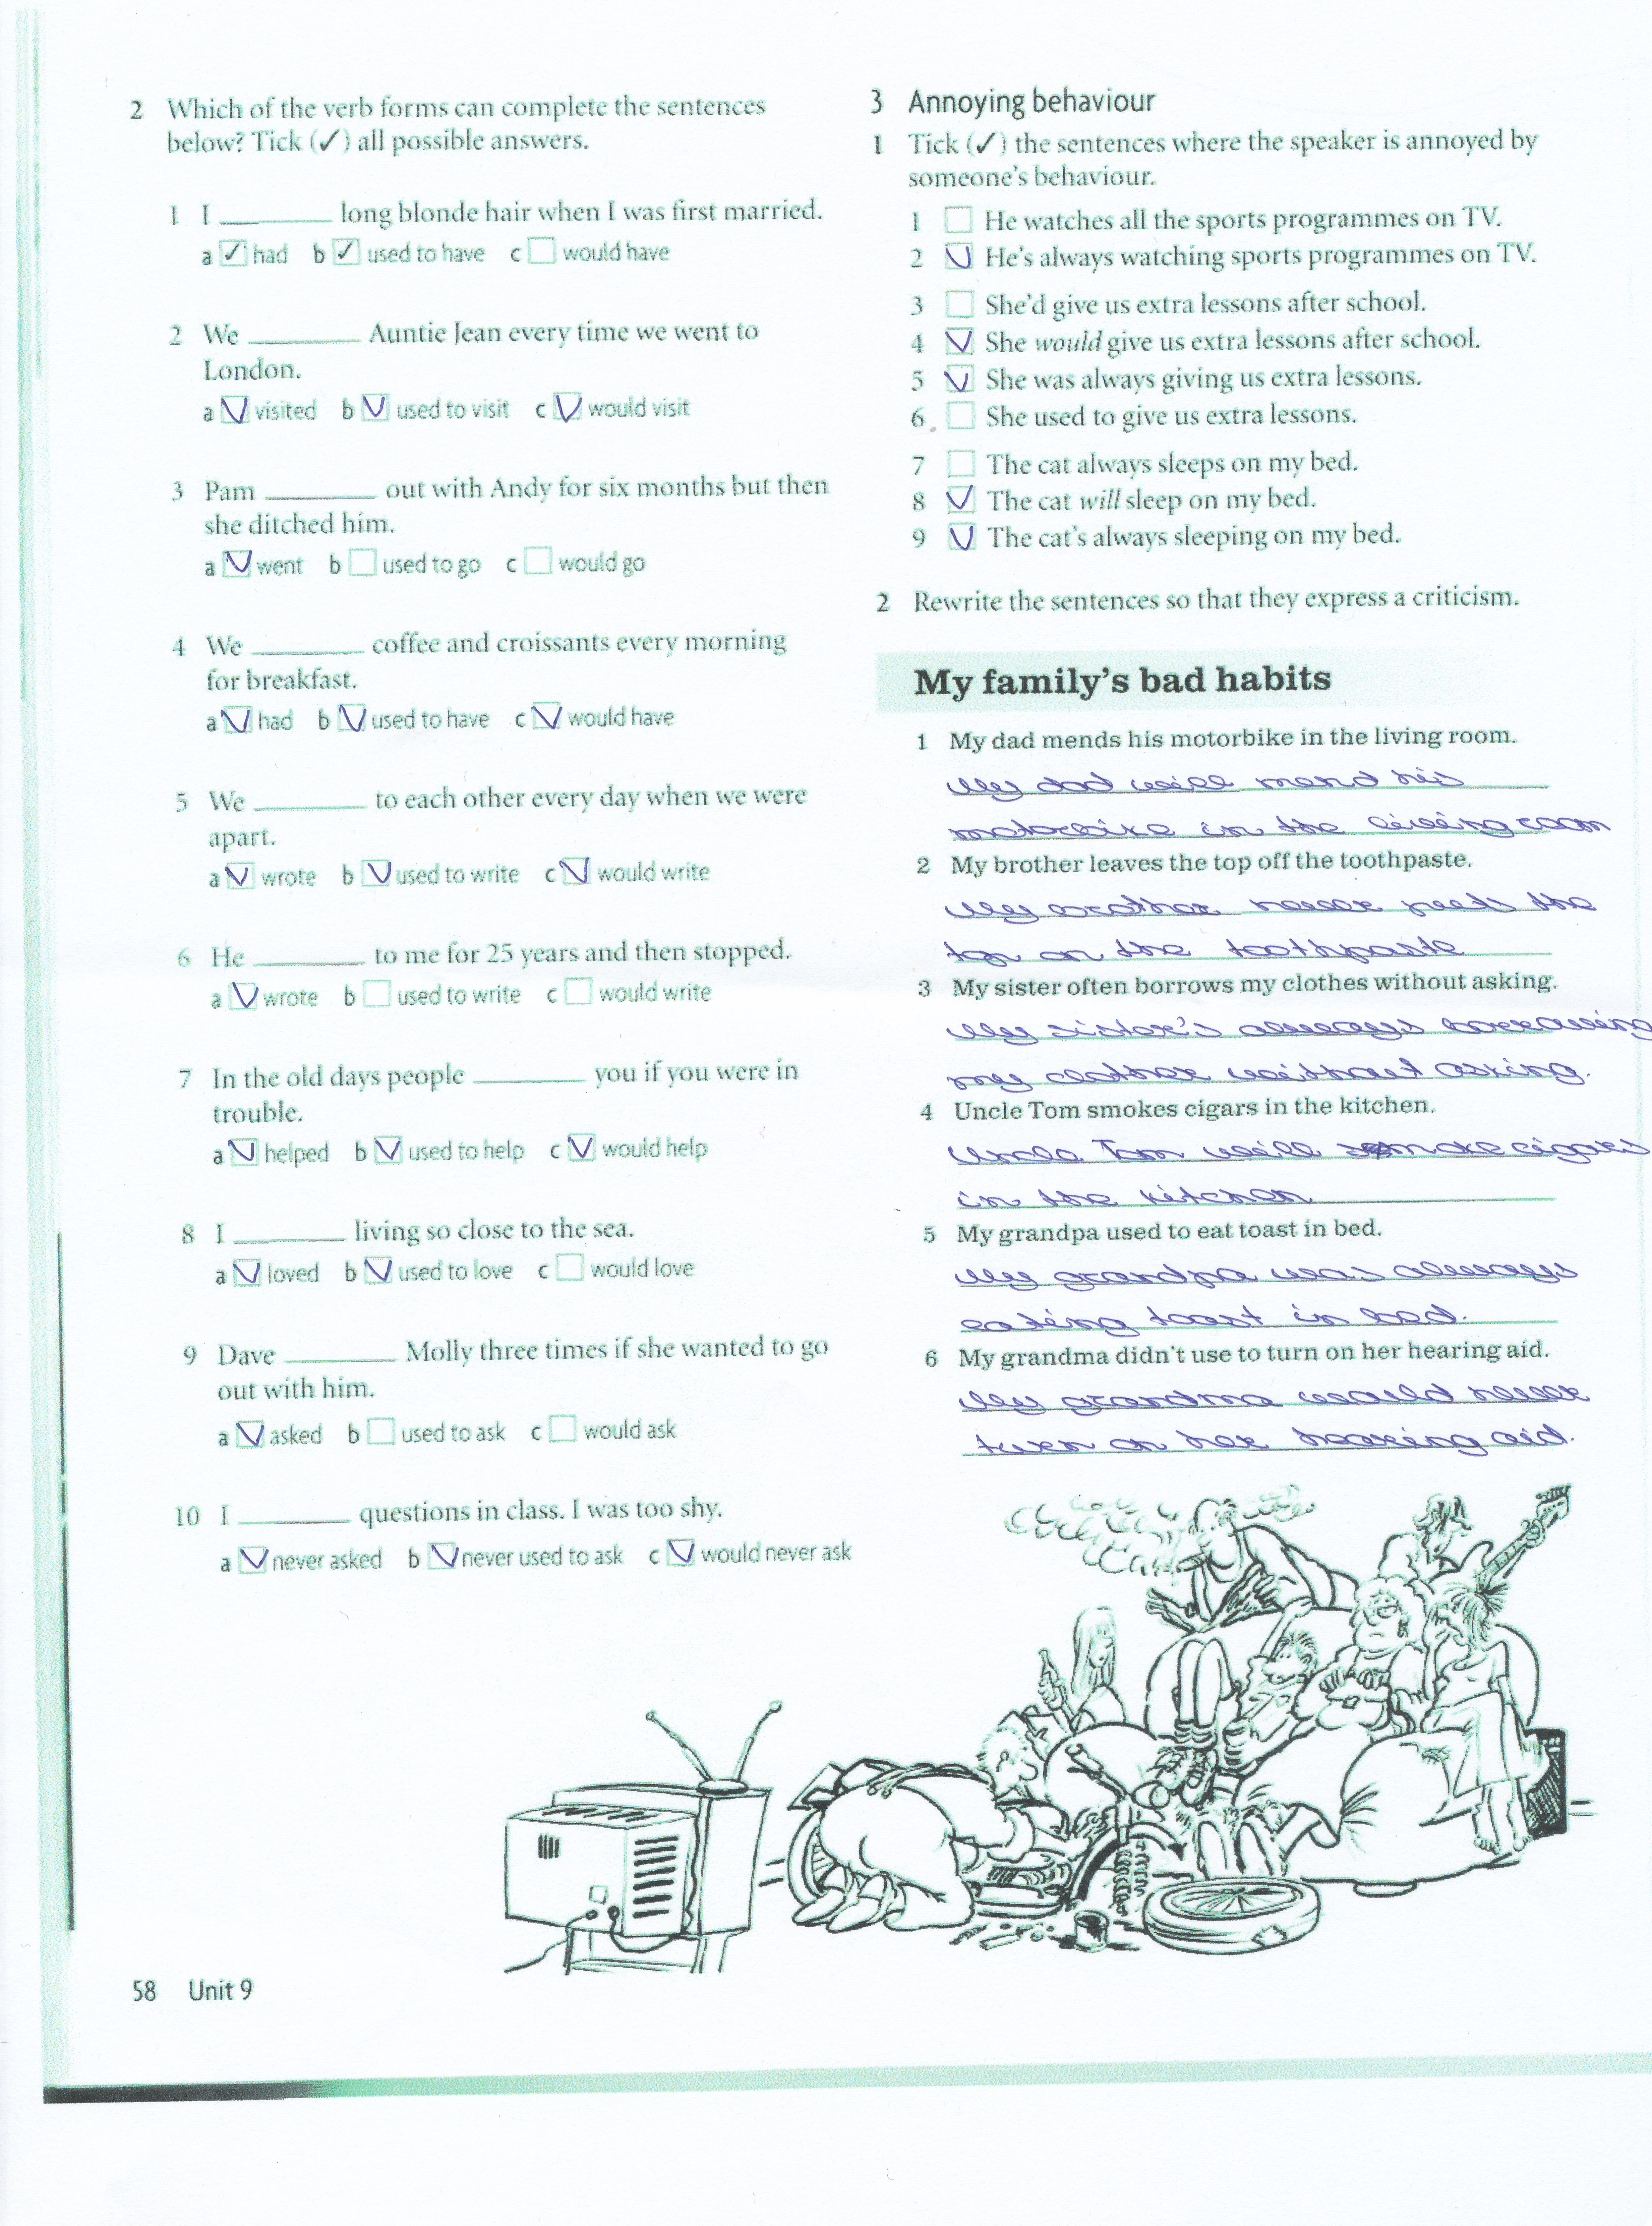 present and past habits exercises pdf